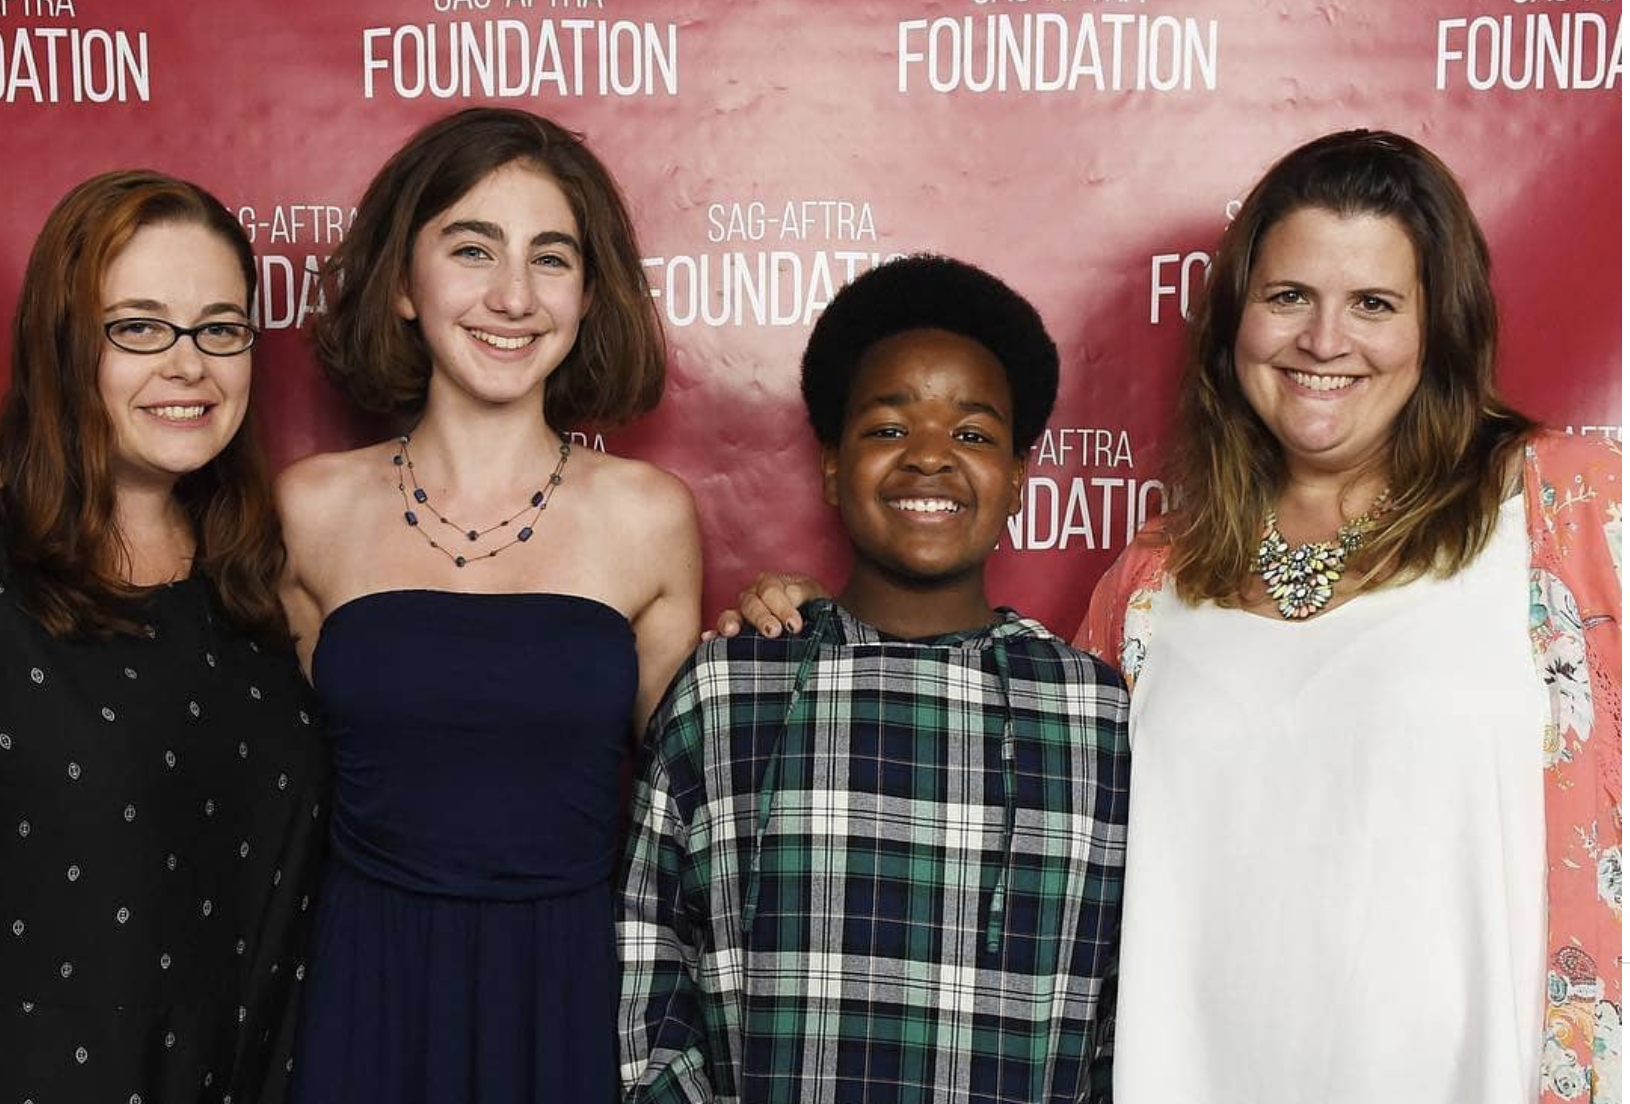 Producer Lacey Leavitt, actress Sophia Mitri Schloss, actor Keith L. Williams, and writer/director Megan Griffiths at the SAG-AFTRA Foundation LA screening, Photo credit: Amanda Edwards/Getty Images